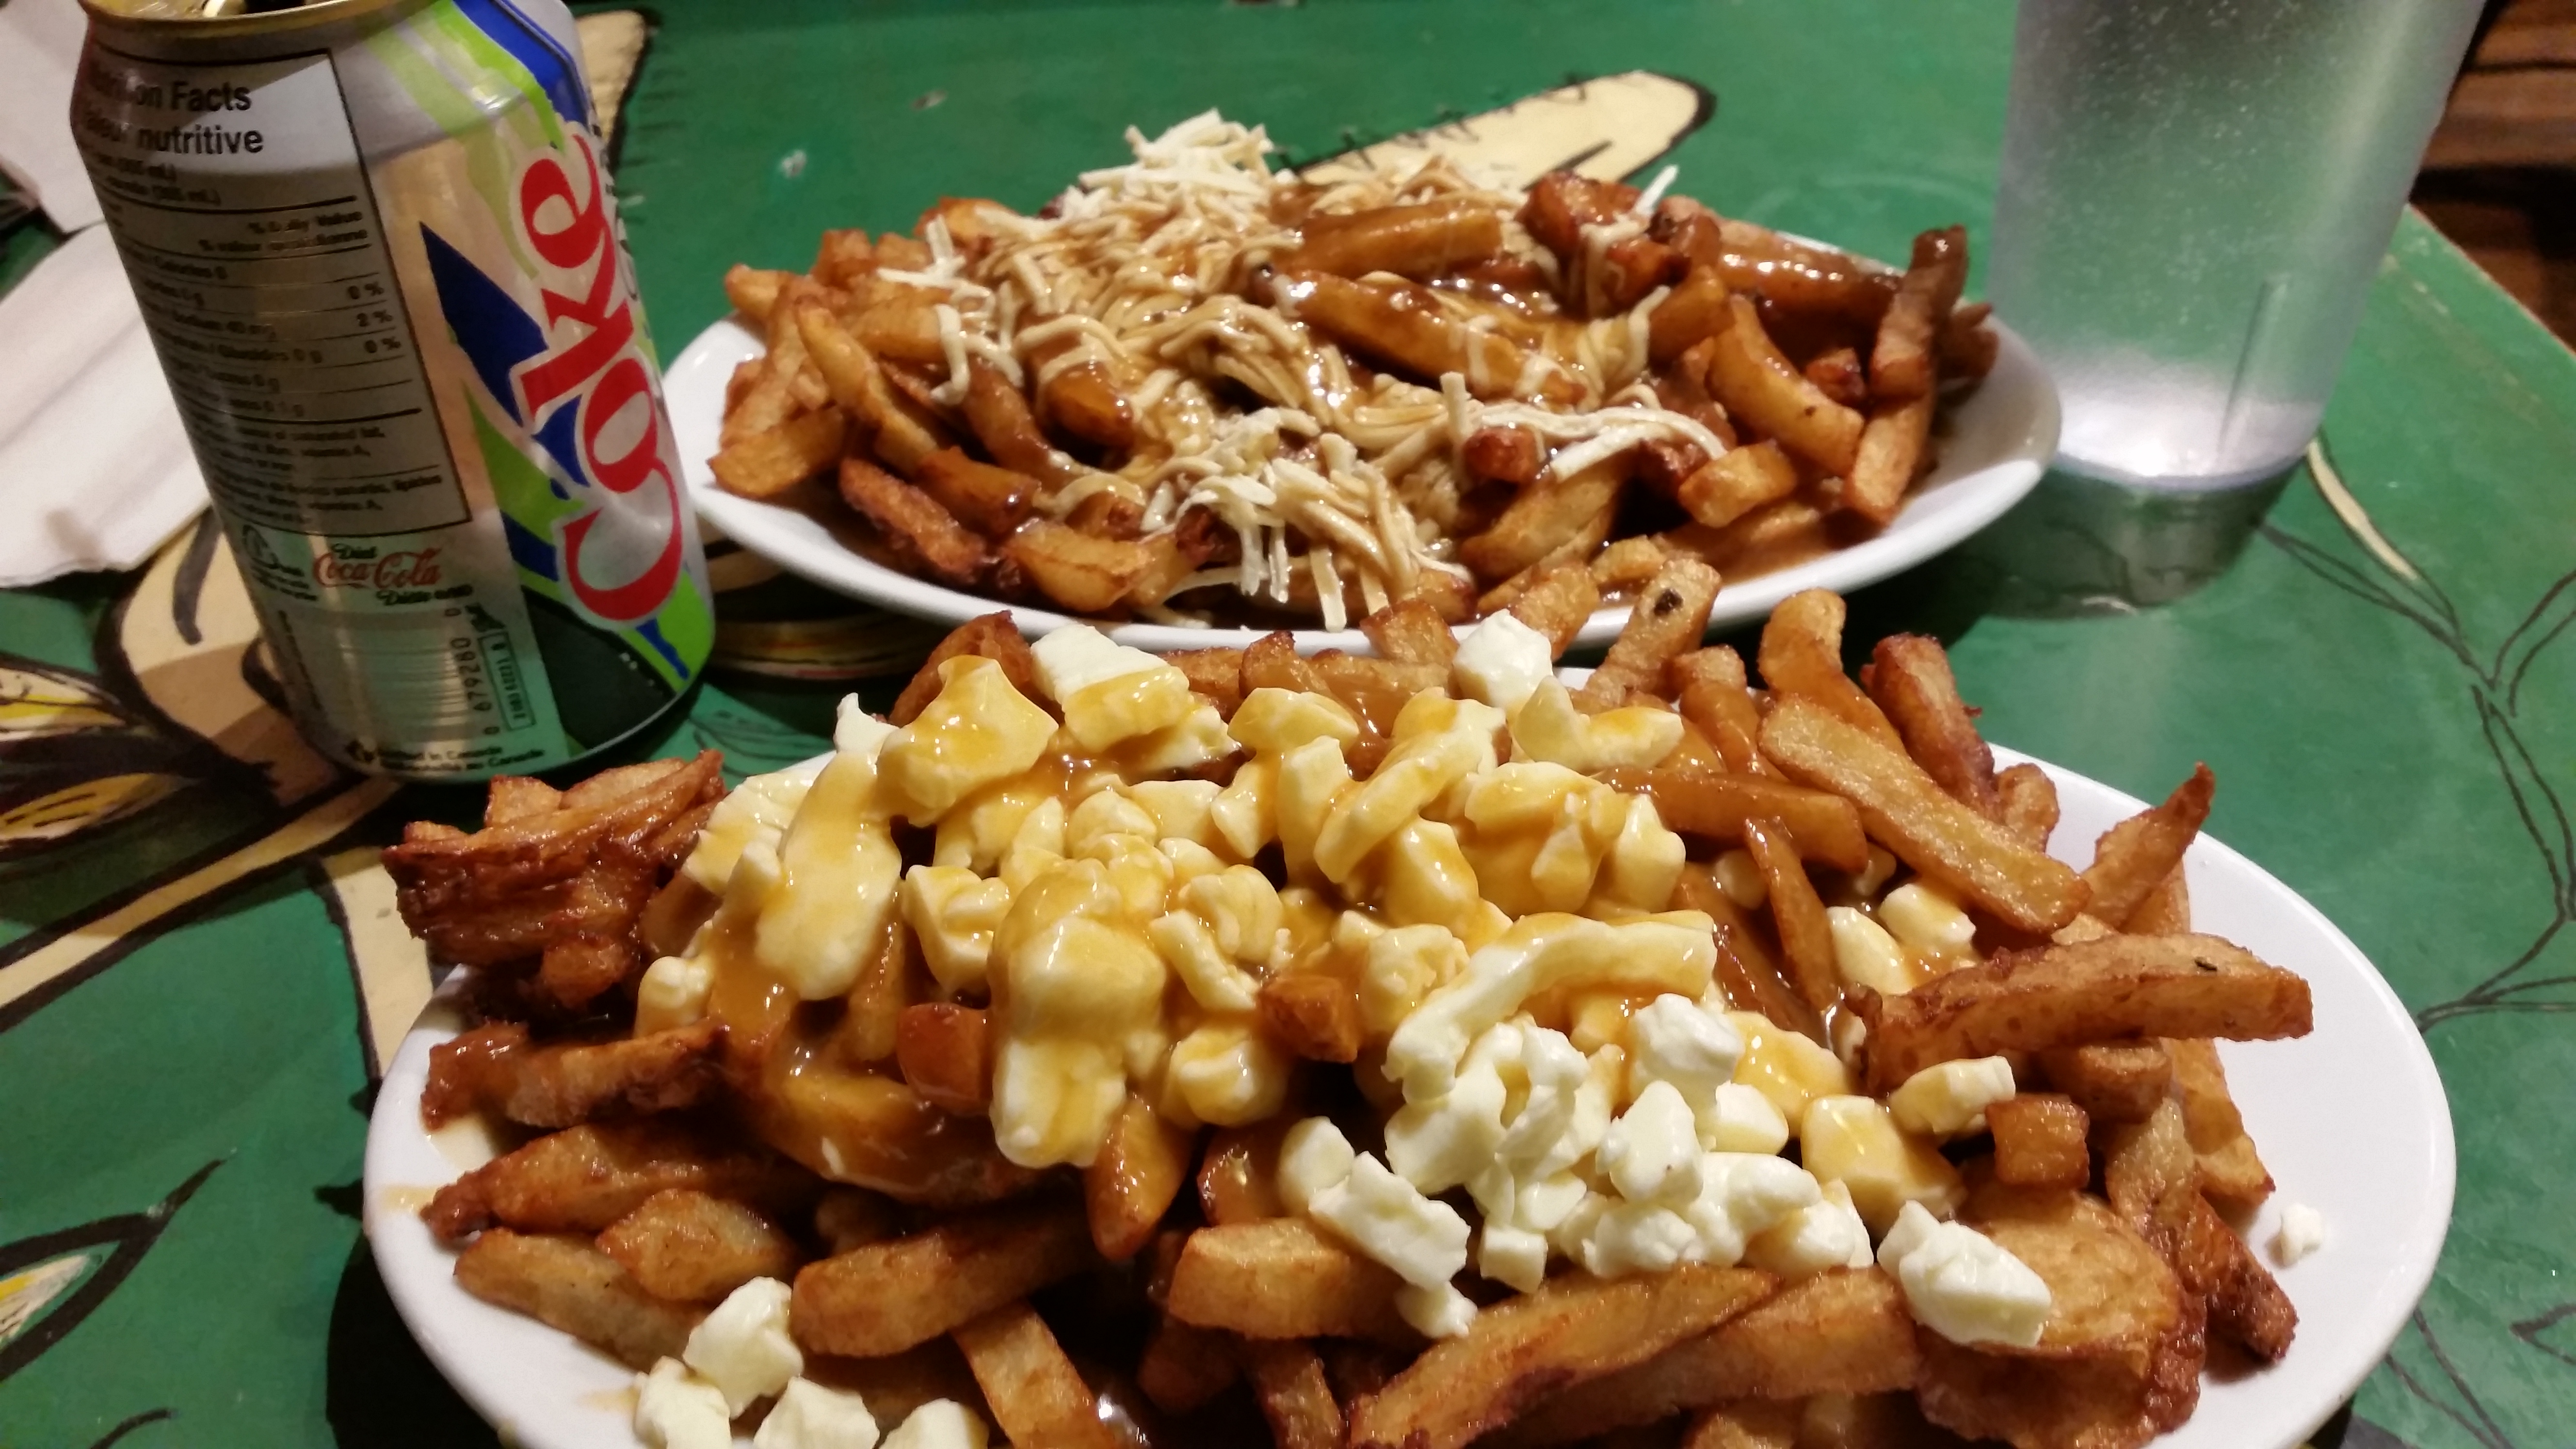 If you're not based in Canada, Seattle or maybe Burlington, Vermont sadly  there is a good chance you didn't grow up with poutine. Montreal's  signature food ...